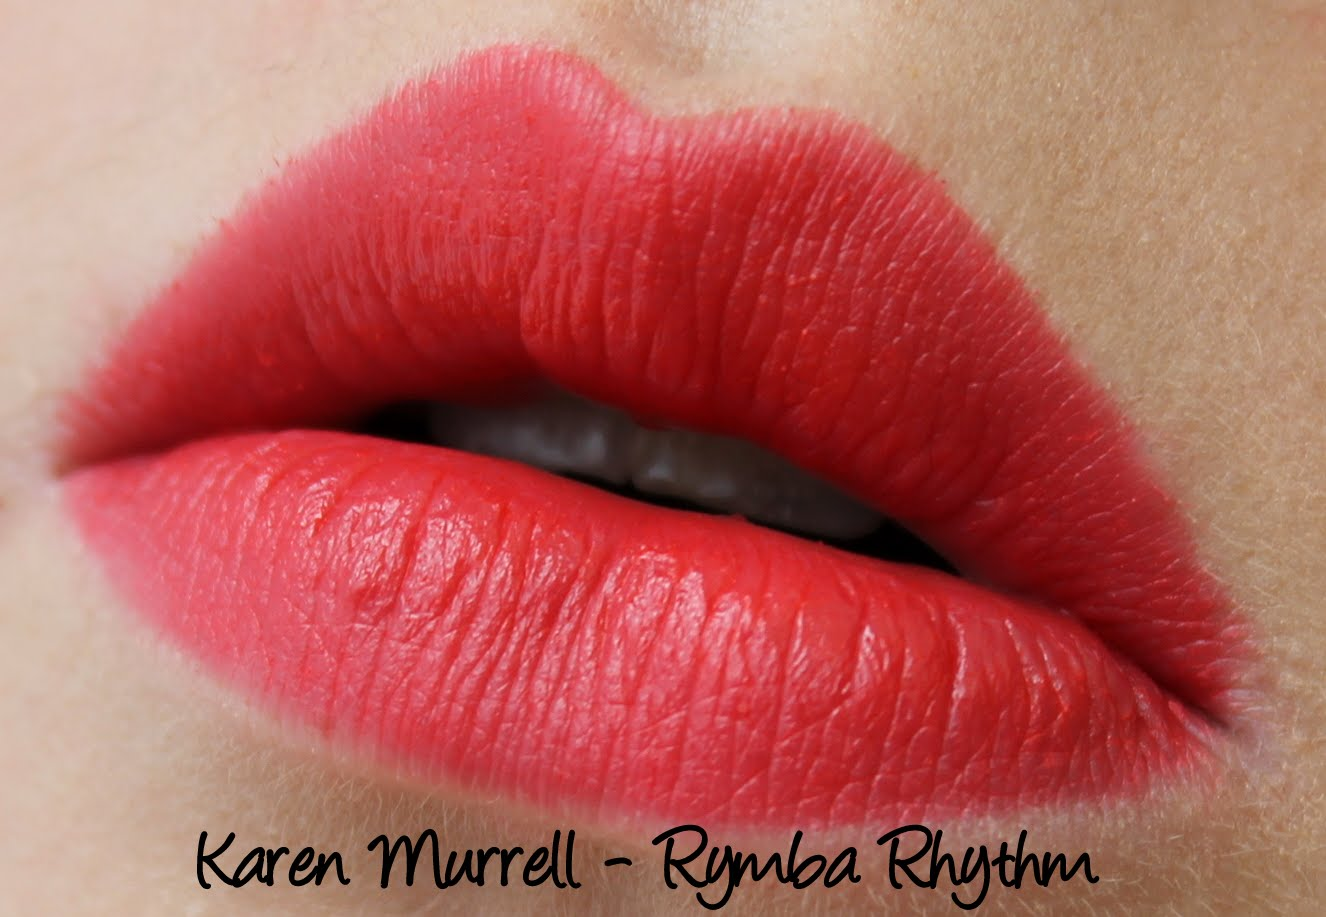 Karen Murrell Rymba Rhythm Lipstick Swatch and Revoew